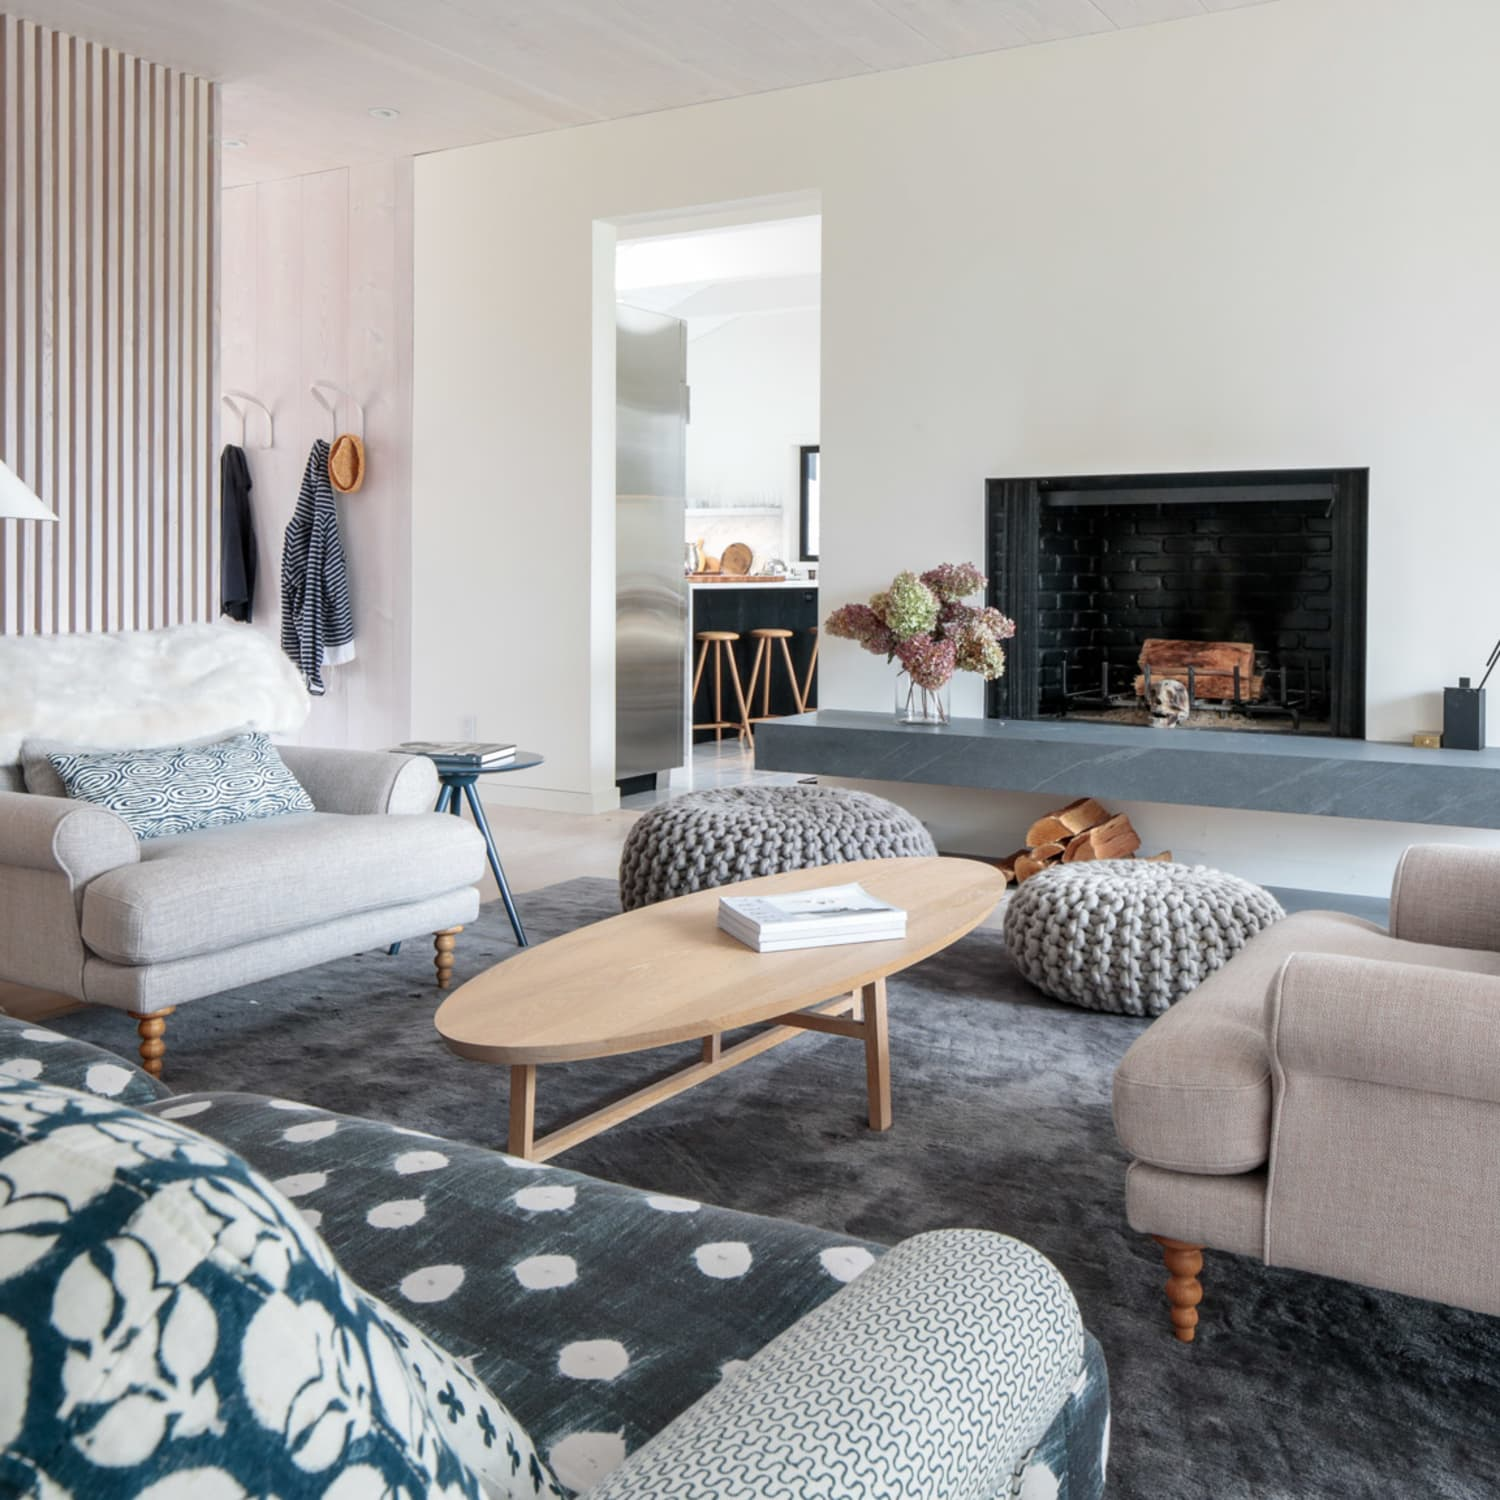 Enter to Win The Maxwell Apartment Sofa | Apartment Therapy